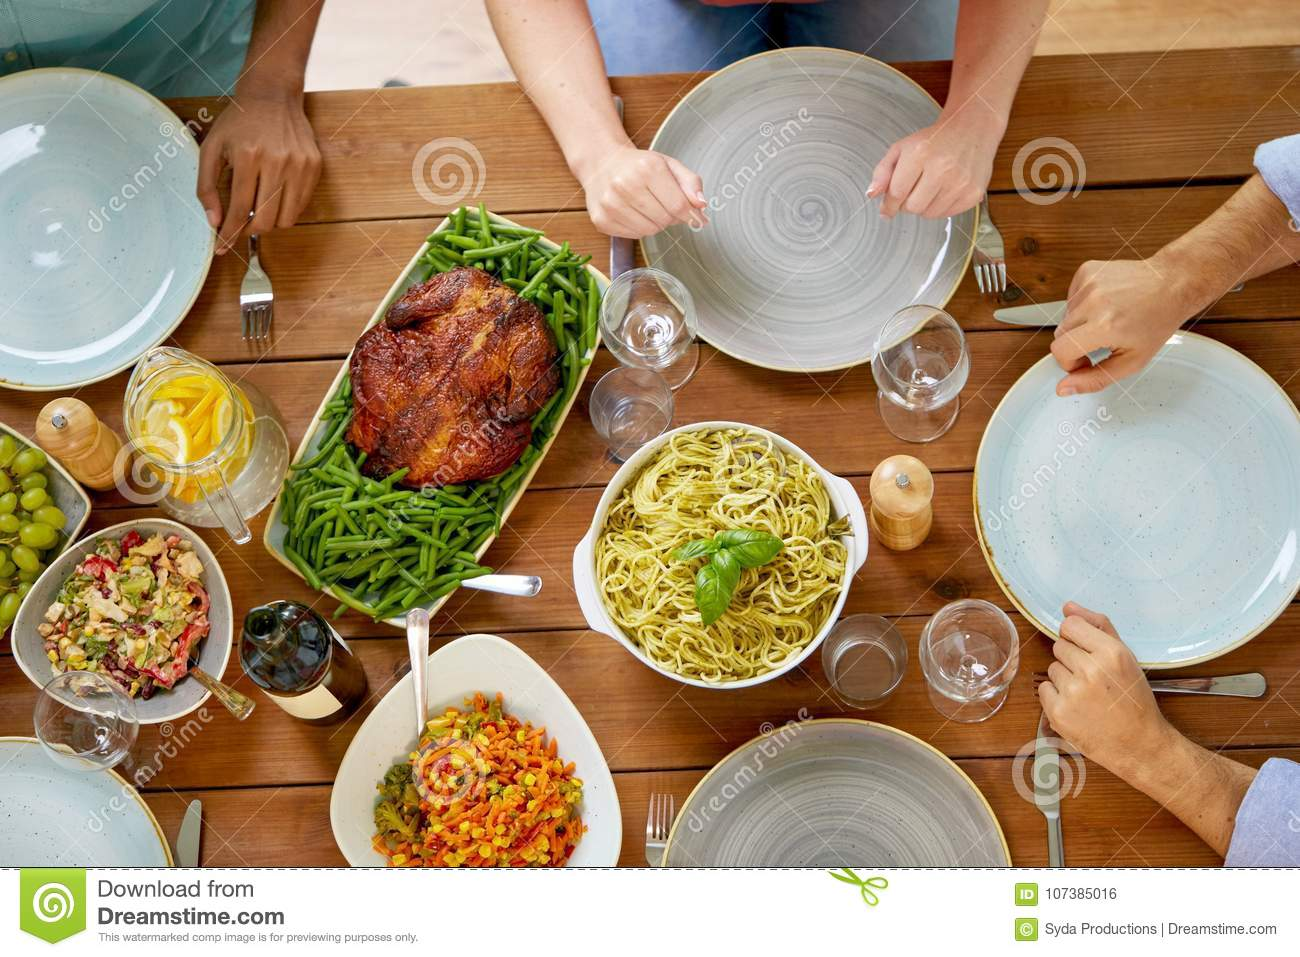 Group of people with chicken and pasta on table